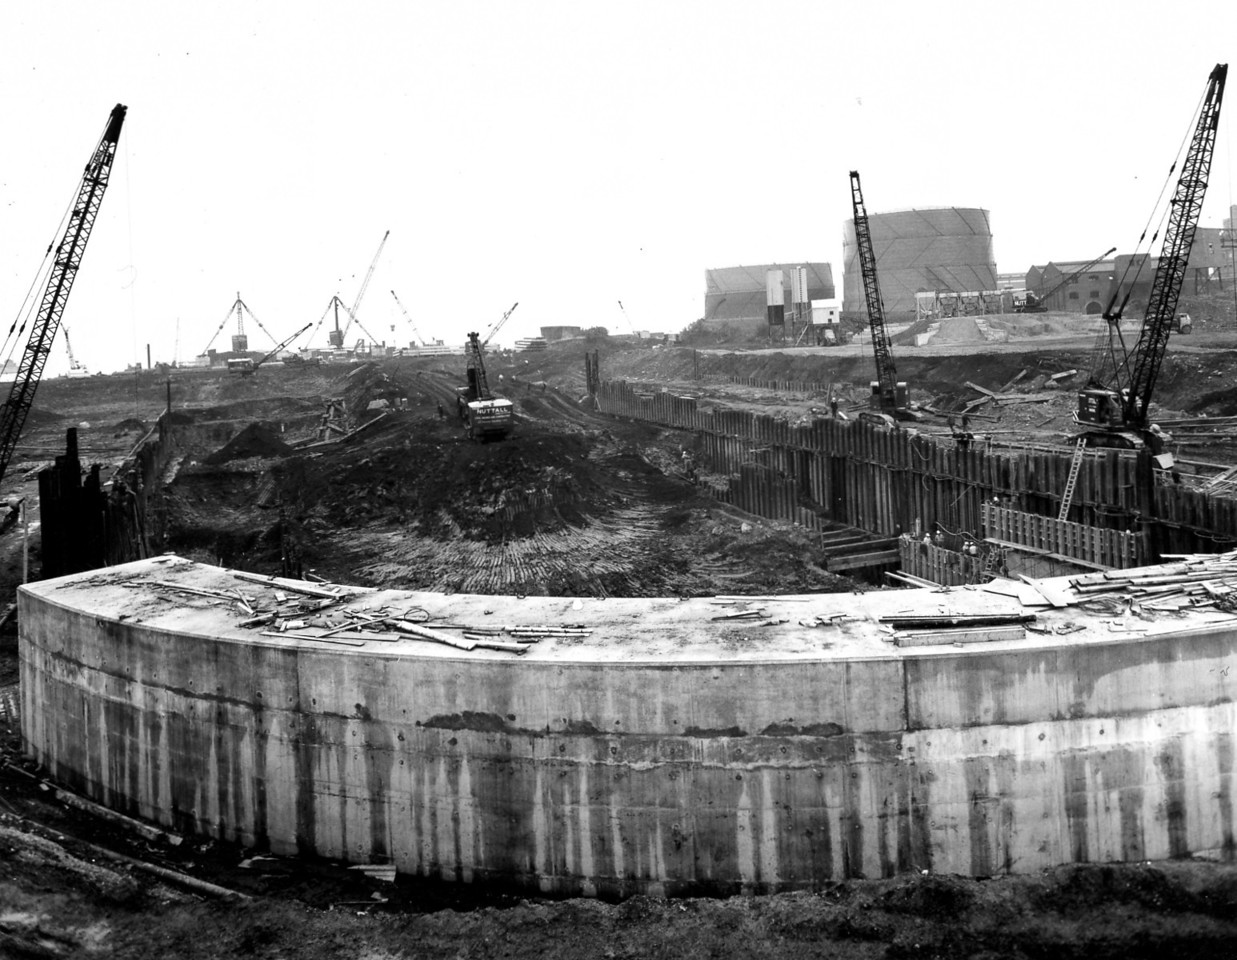 D043General view of dock site from head of dock 25/9/1962